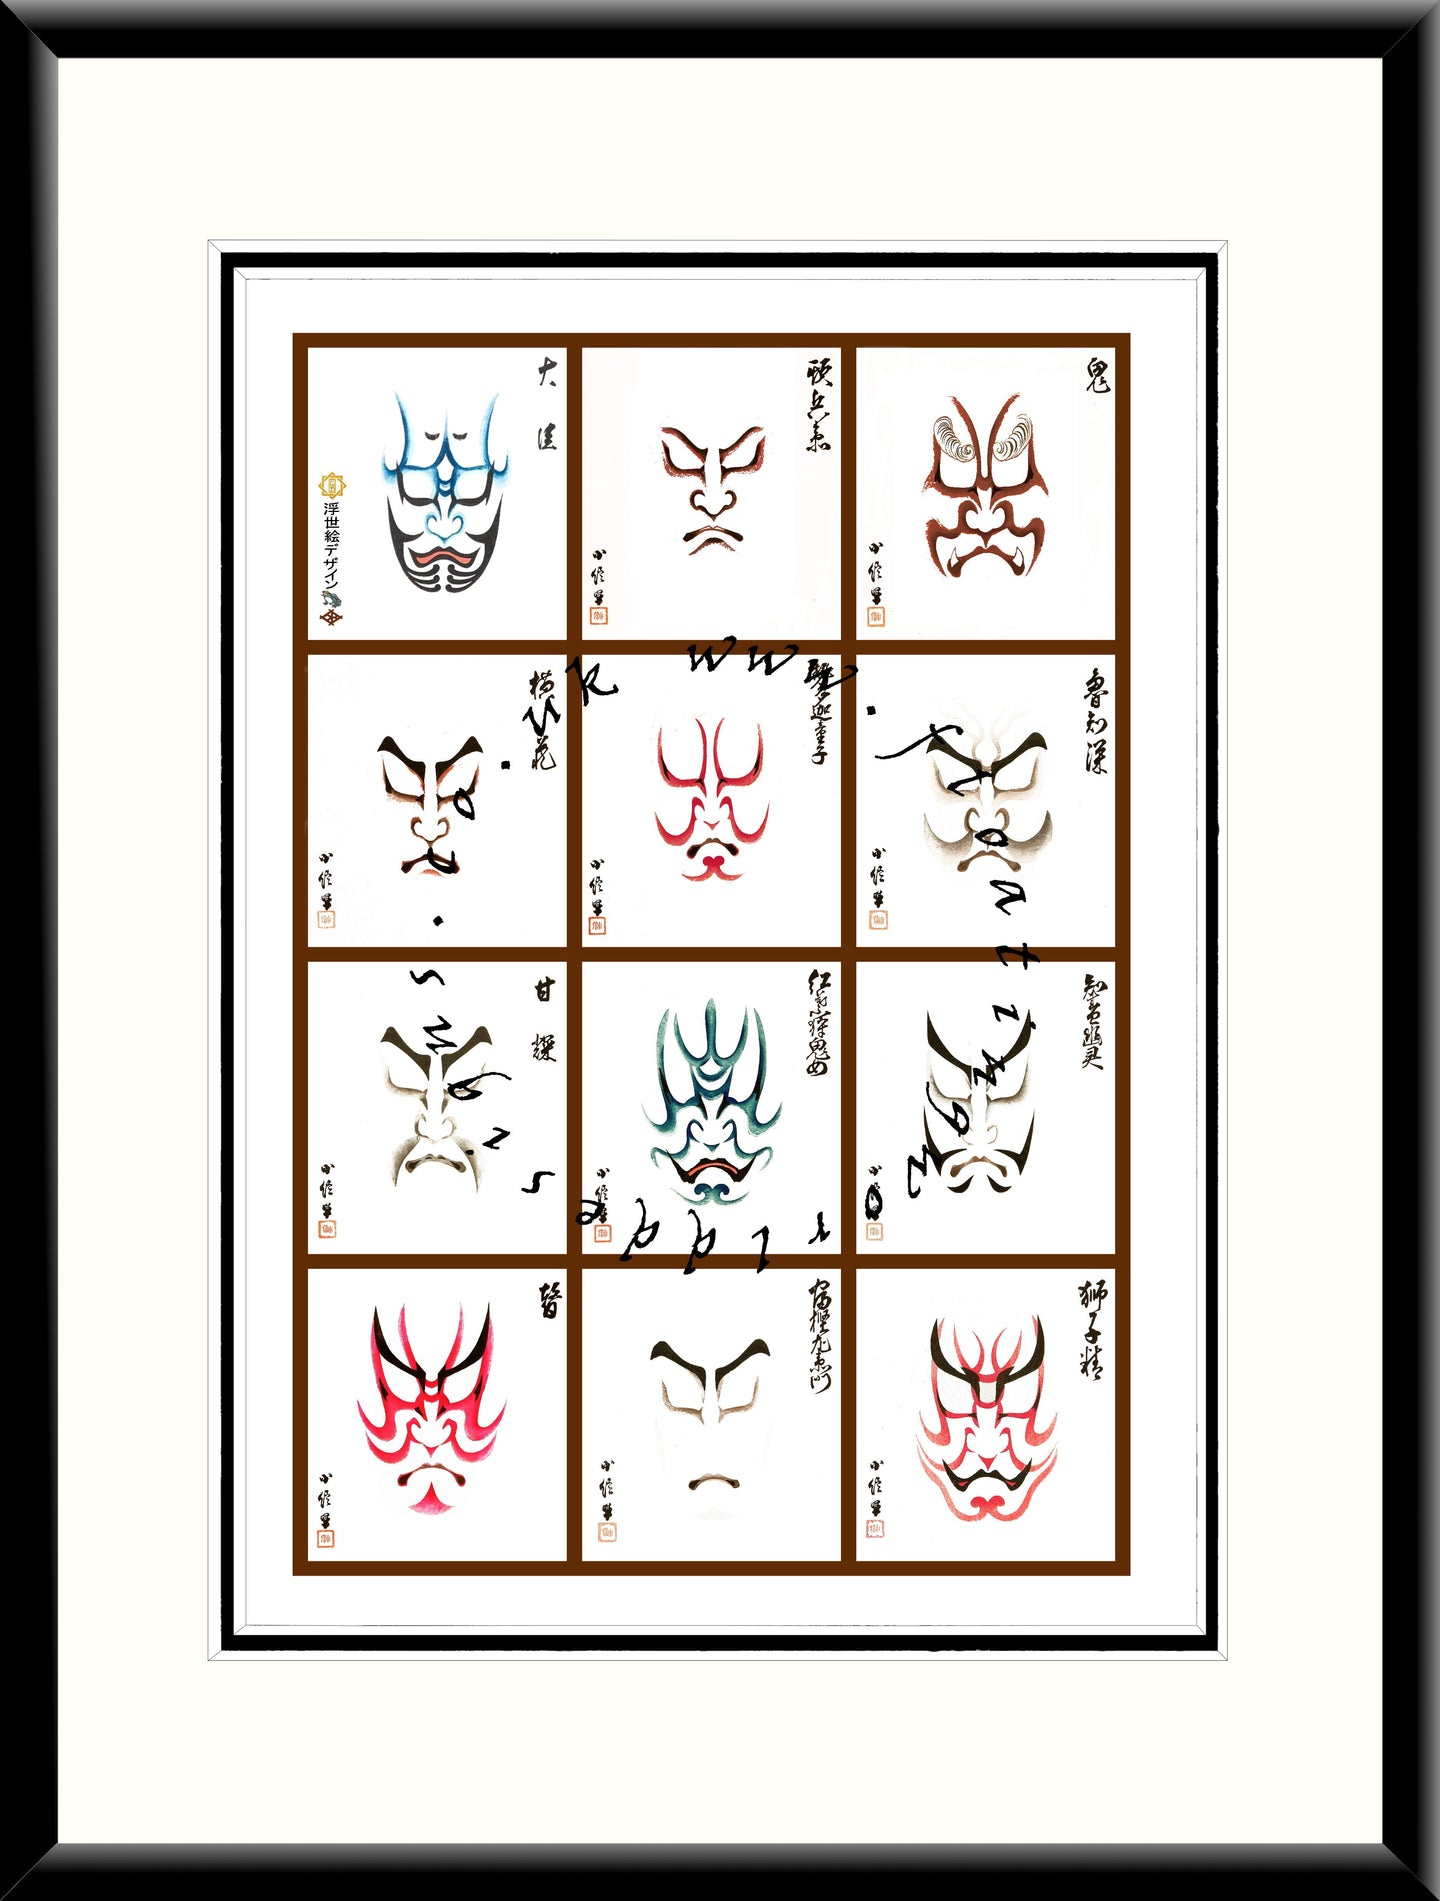 LE-009 Kabuki Masks III Limited Edition Mounted or Framed Print